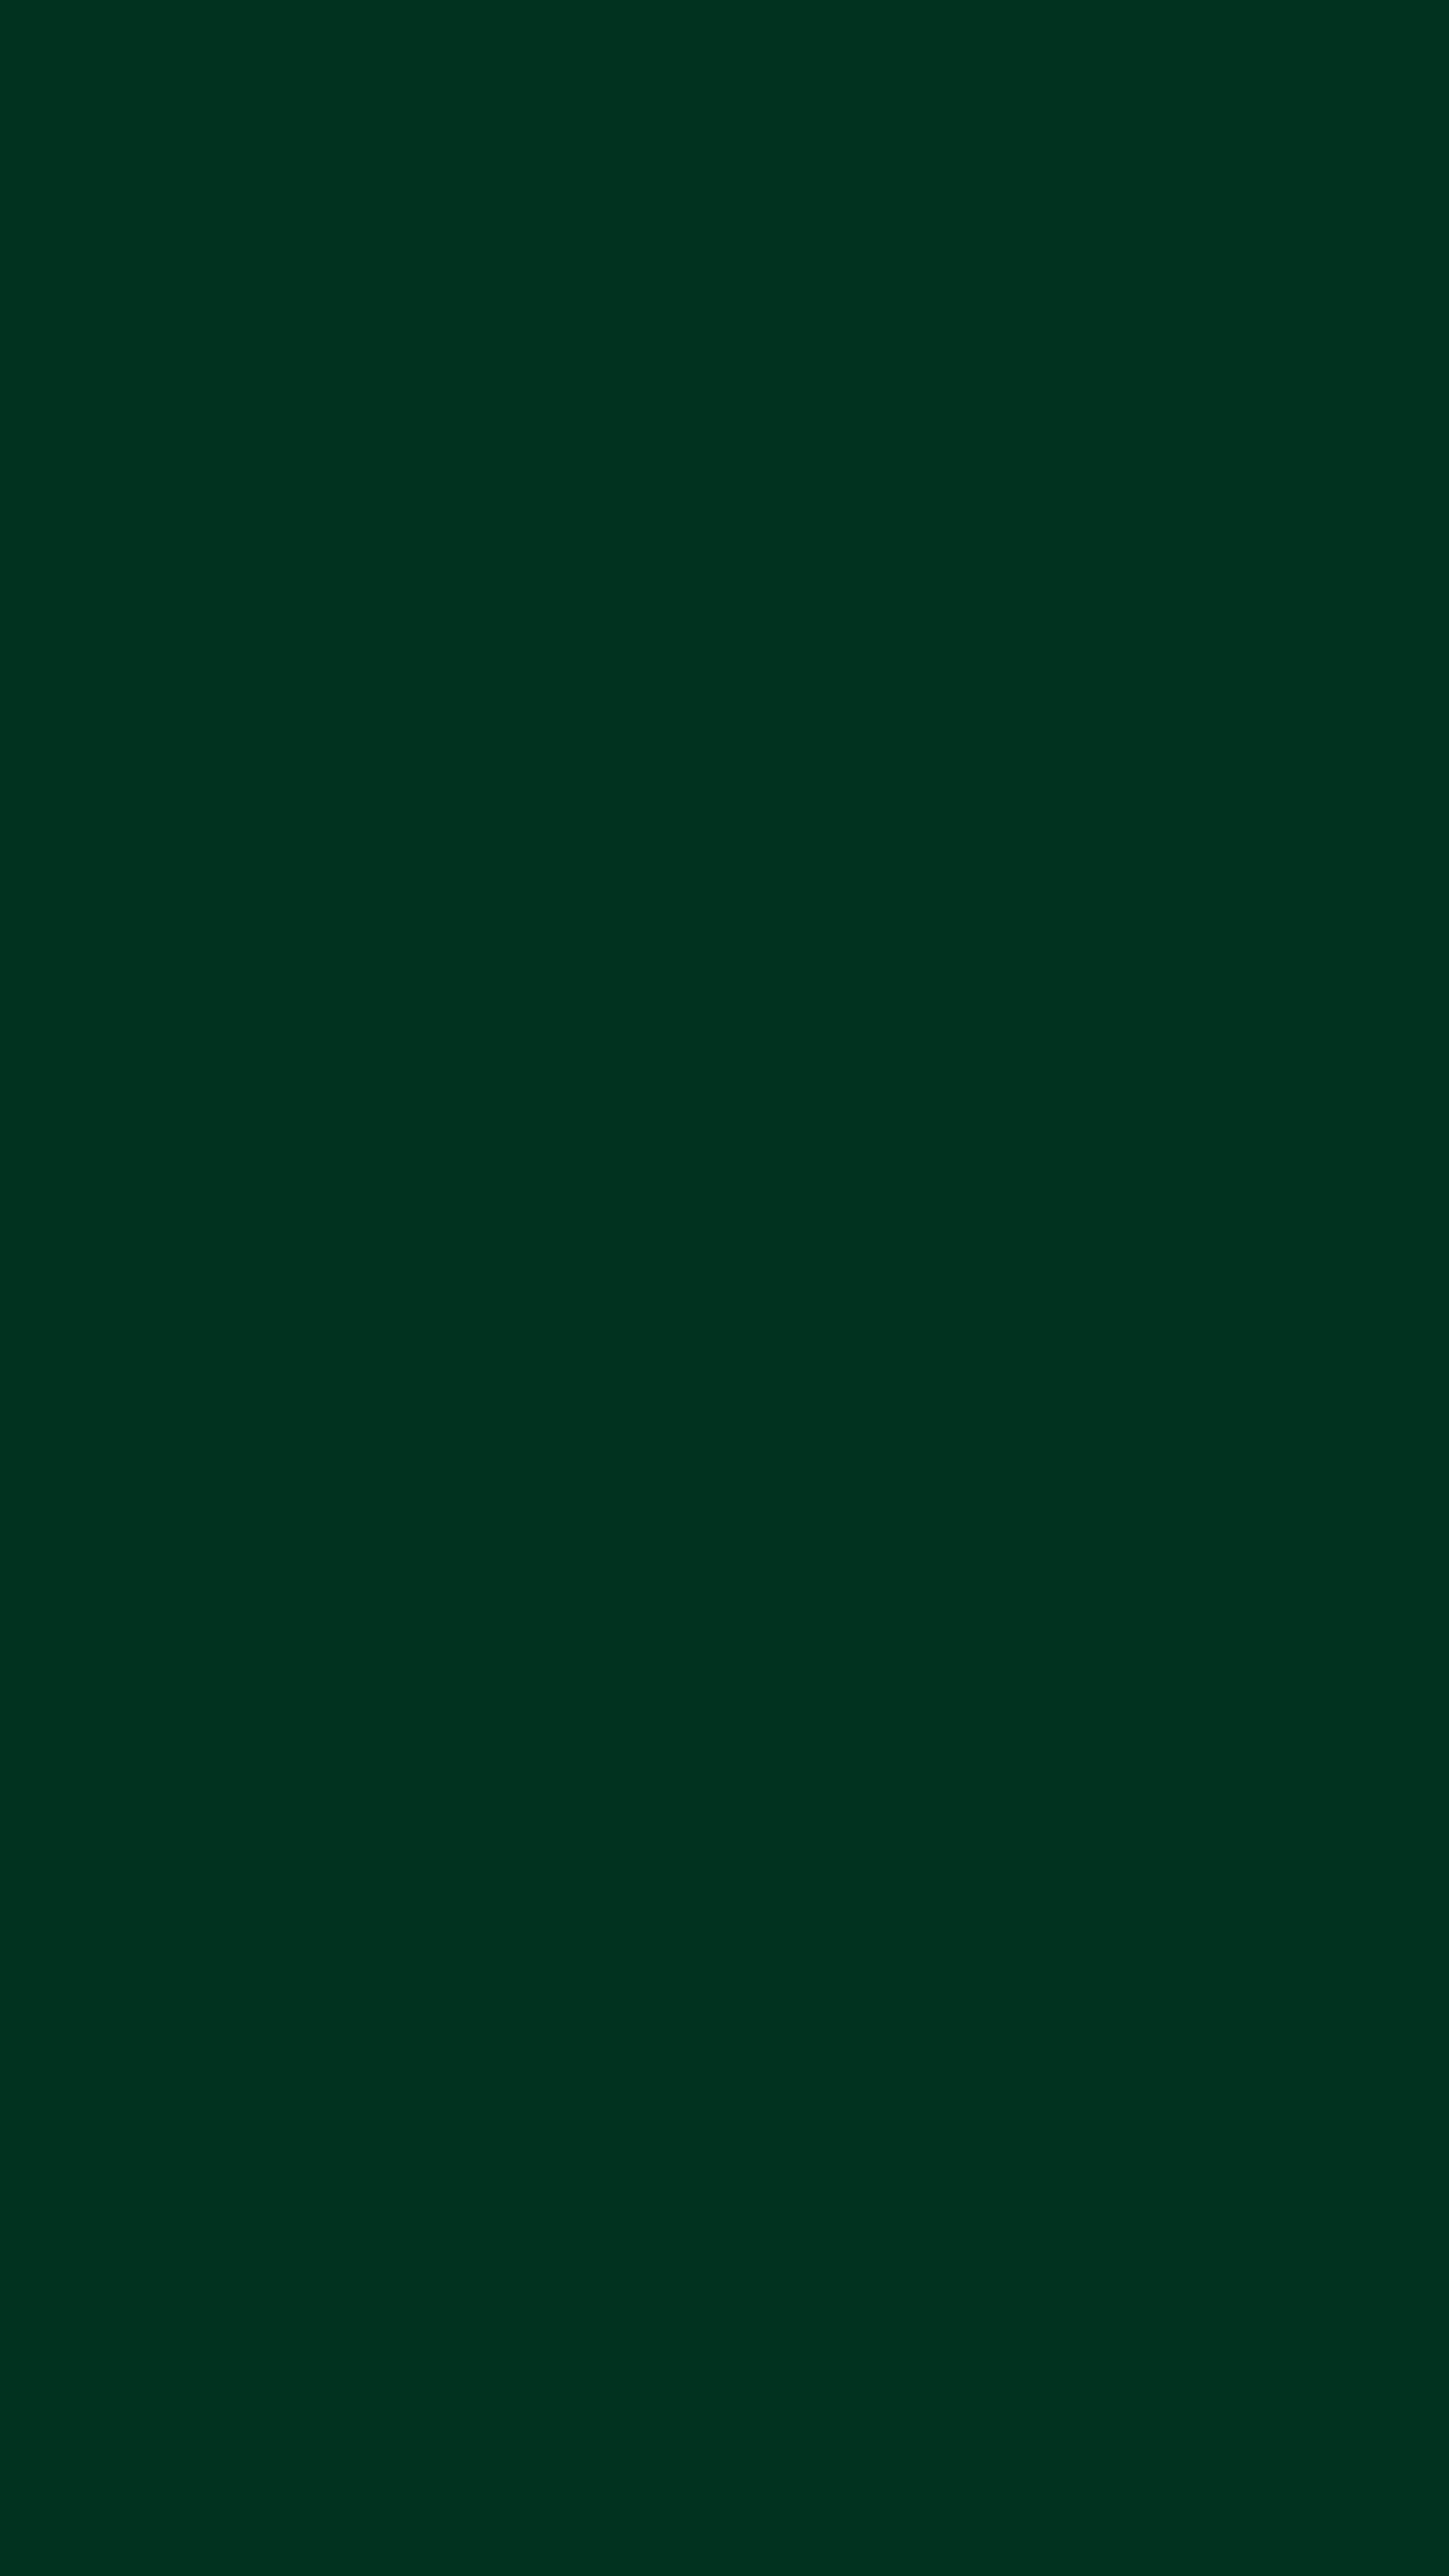 Dark Green Solid Color Background Wallpaper For Mobile Phone